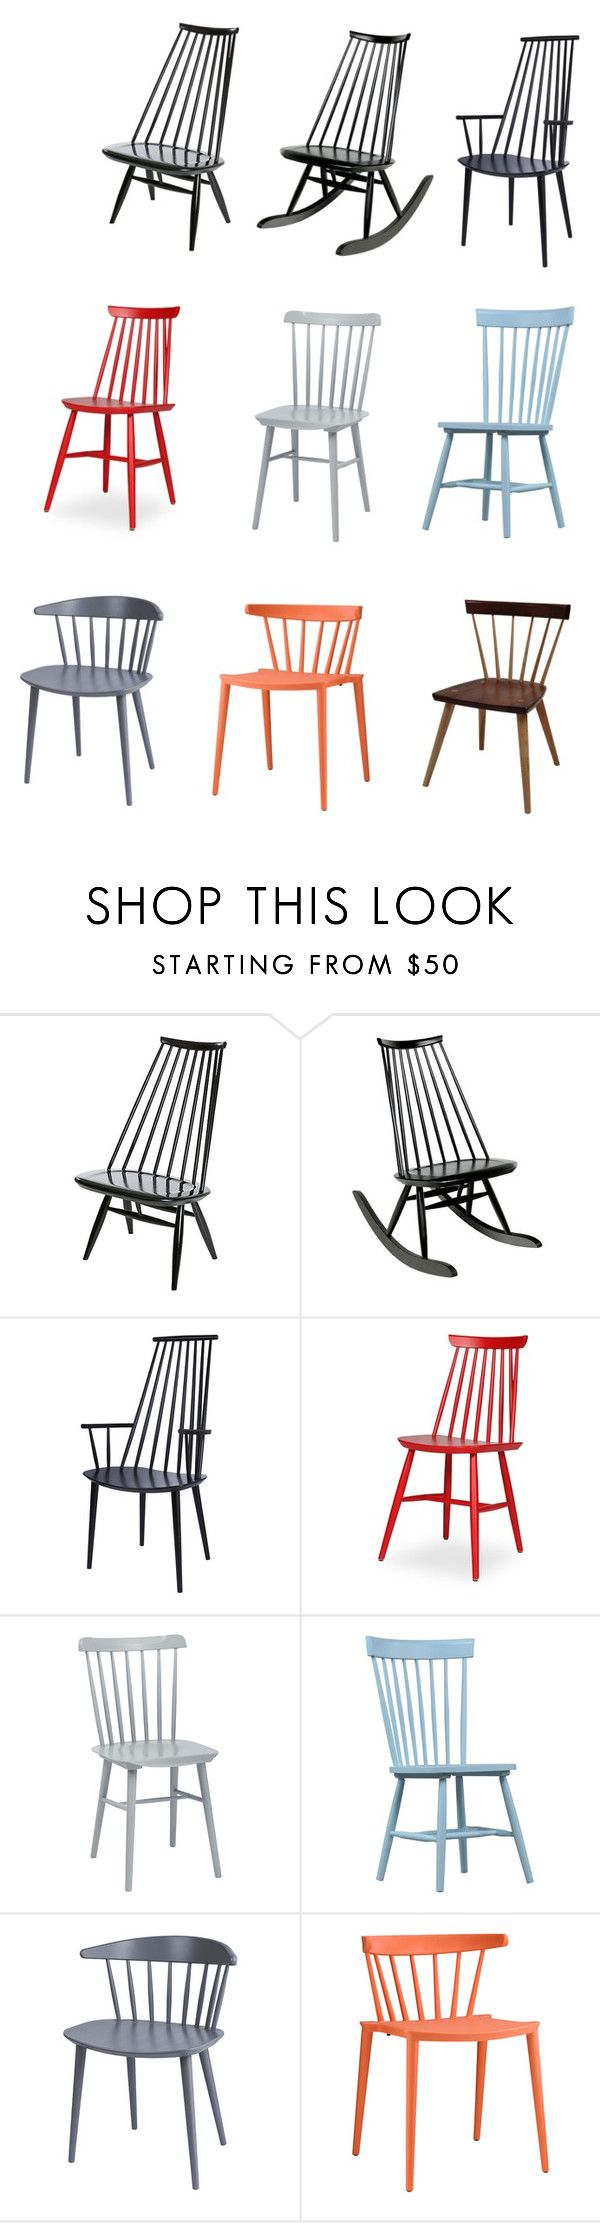 """""""pinnatuolit"""" by anemo ❤ liked on Polyvore featuring interior, interiors, interior design, home, home decor, interior decorating, Artek, HAY, Serena & Lily and Modway"""